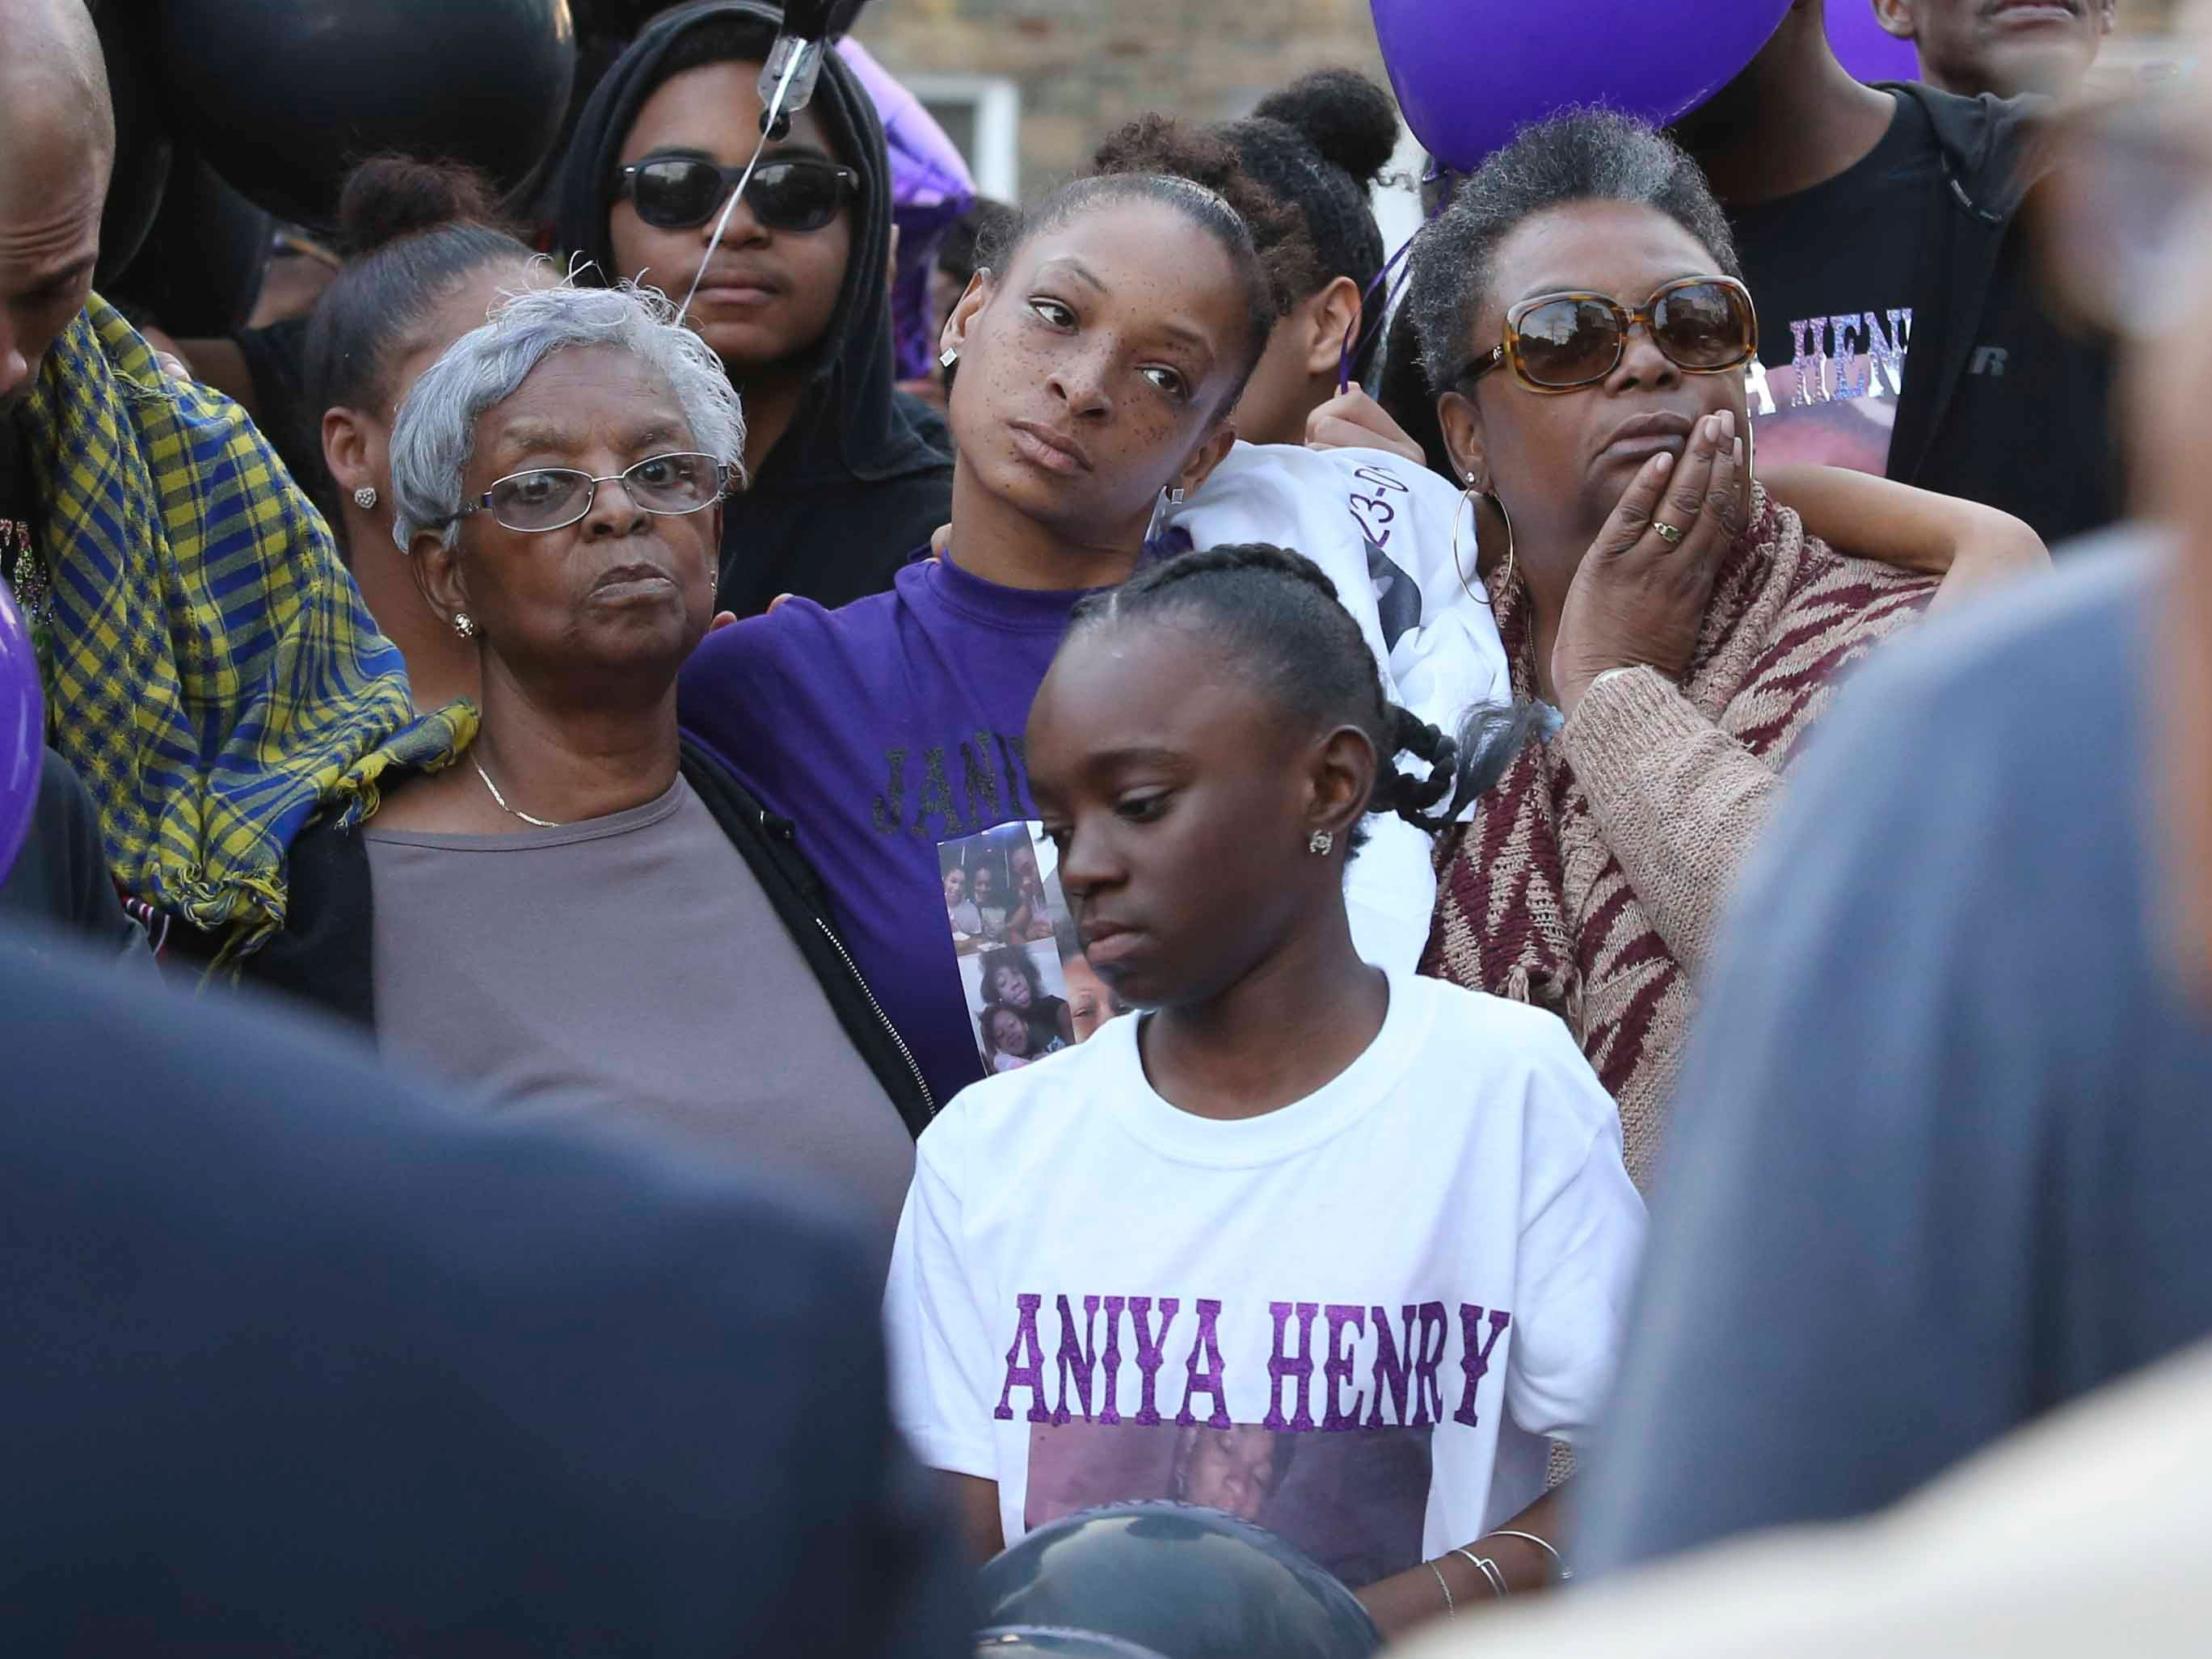 Shavontai Hale (center rear), mother of Janiya Henry, is flanked by her grandmother, Mamie Hale (left) and mother, Sheila Hale and other family members during a memorial gathering for Janiya Henry Friday evening in Wilmington.